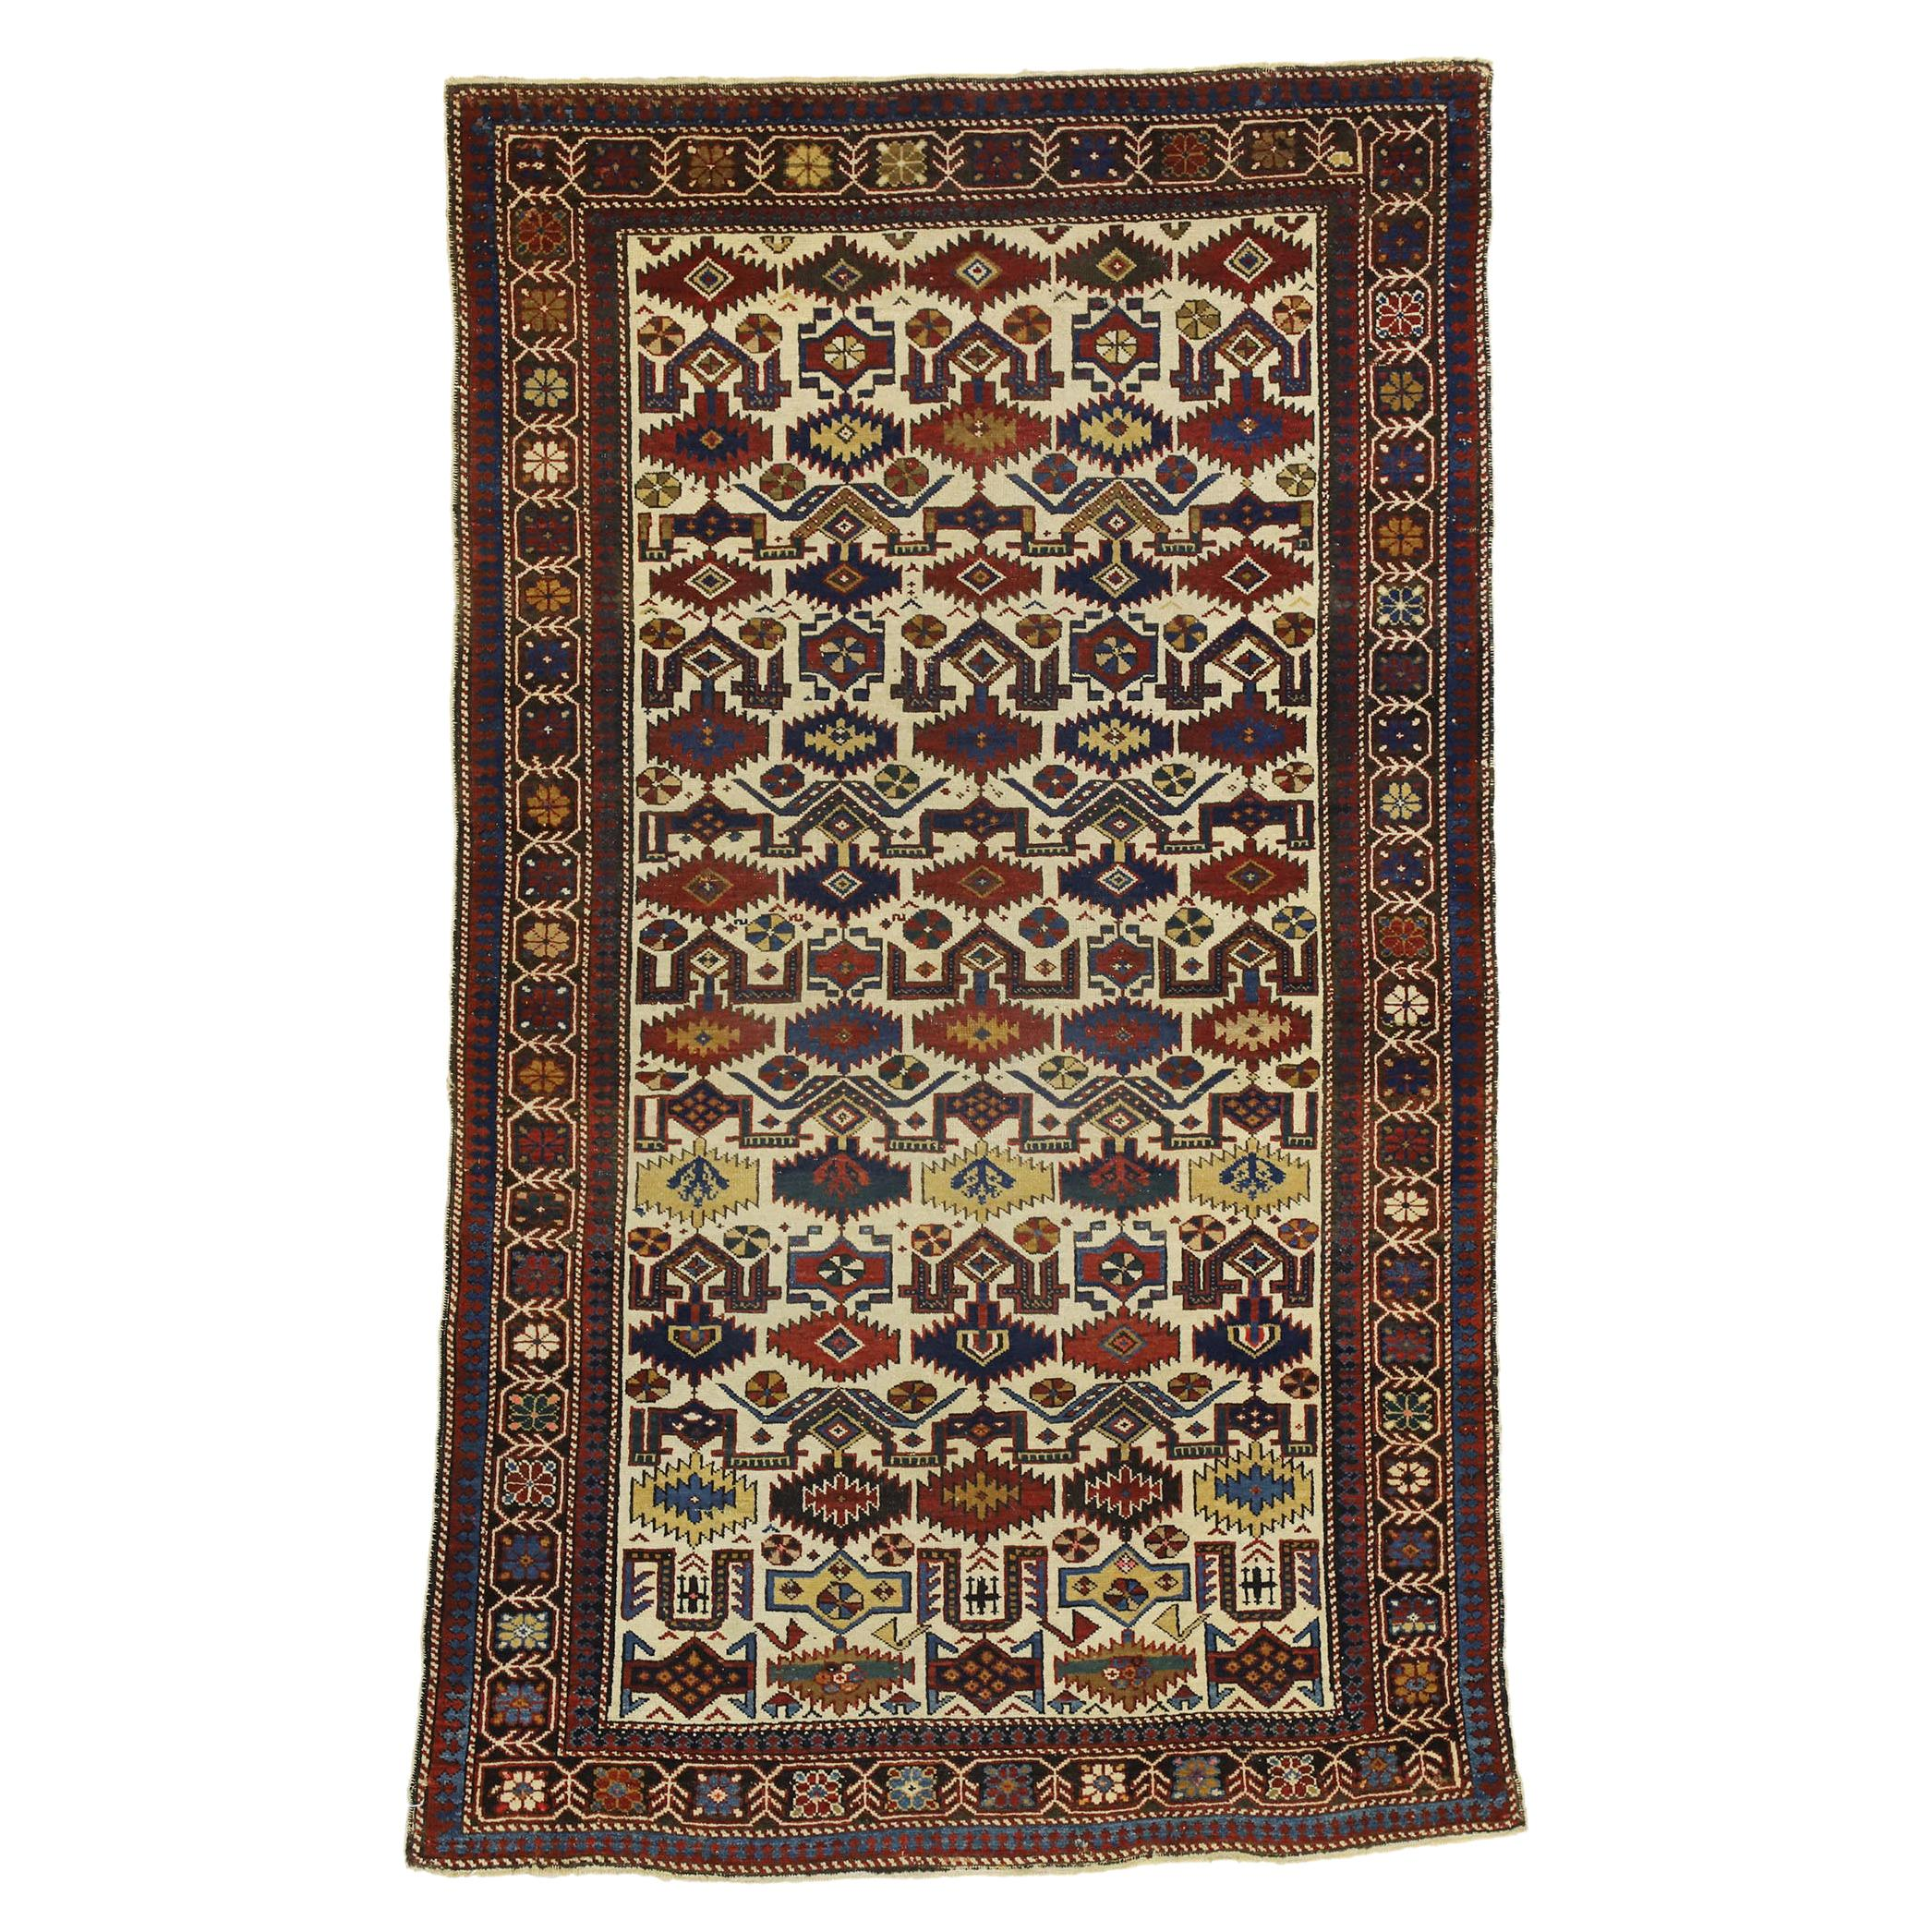 Antique Caucasian Shirvan Rug with Modern Tribal Style